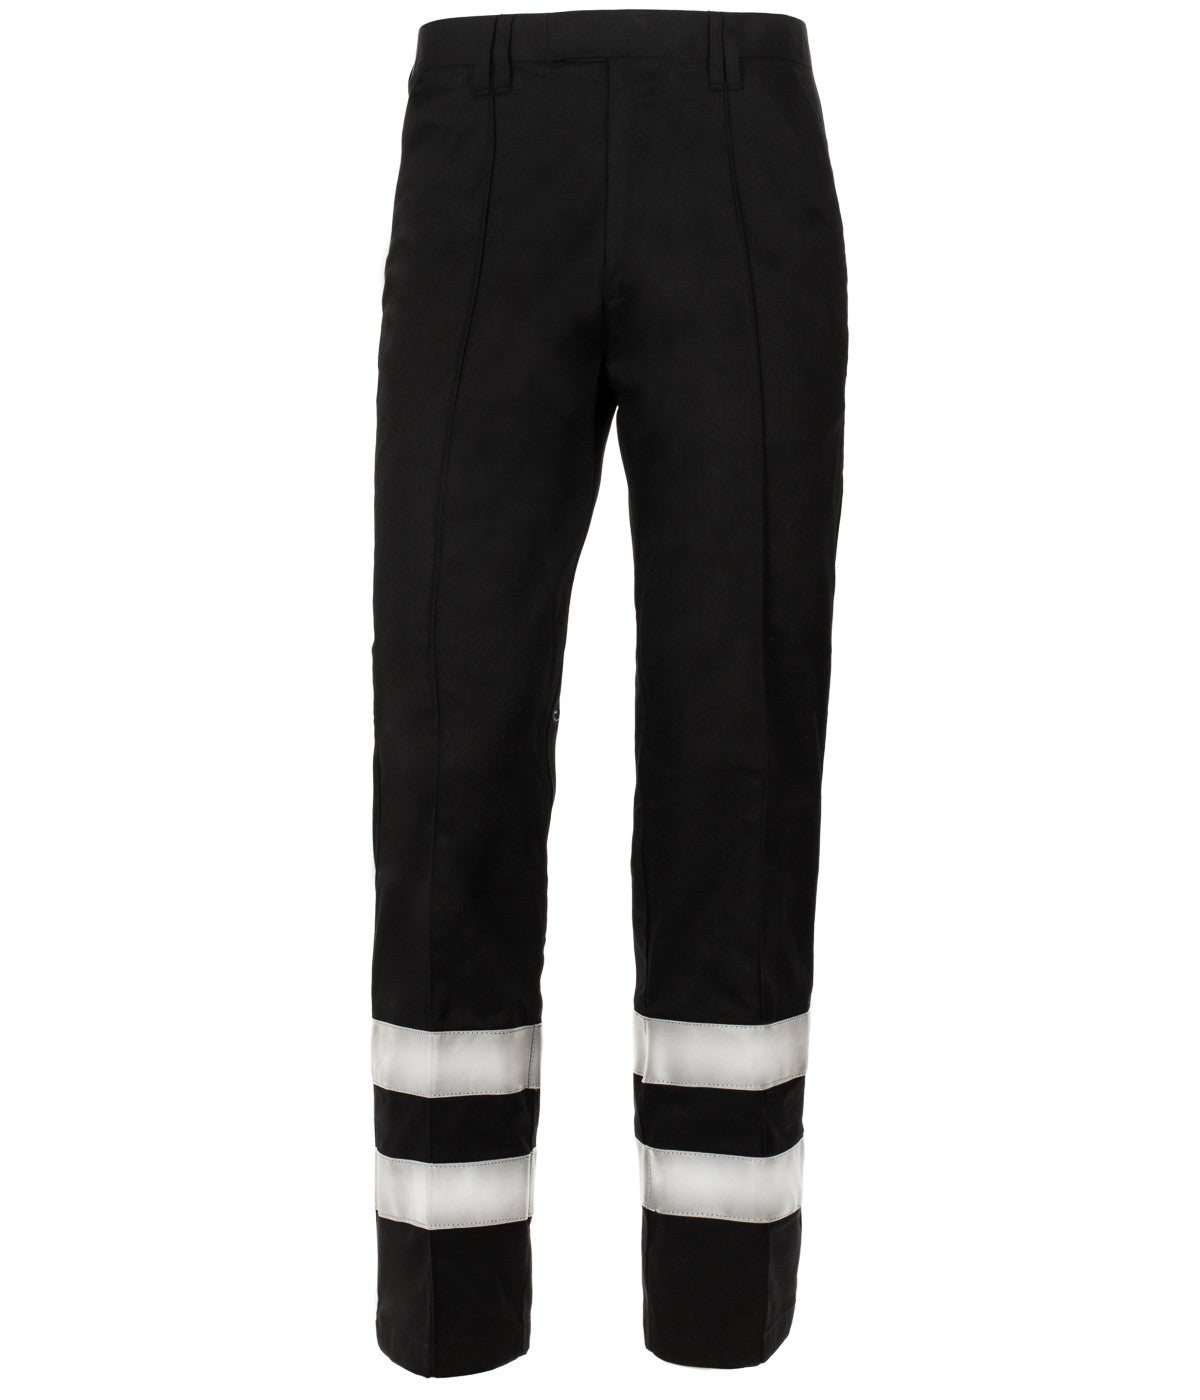 T35 Men's Reflective Classic Work Trousers